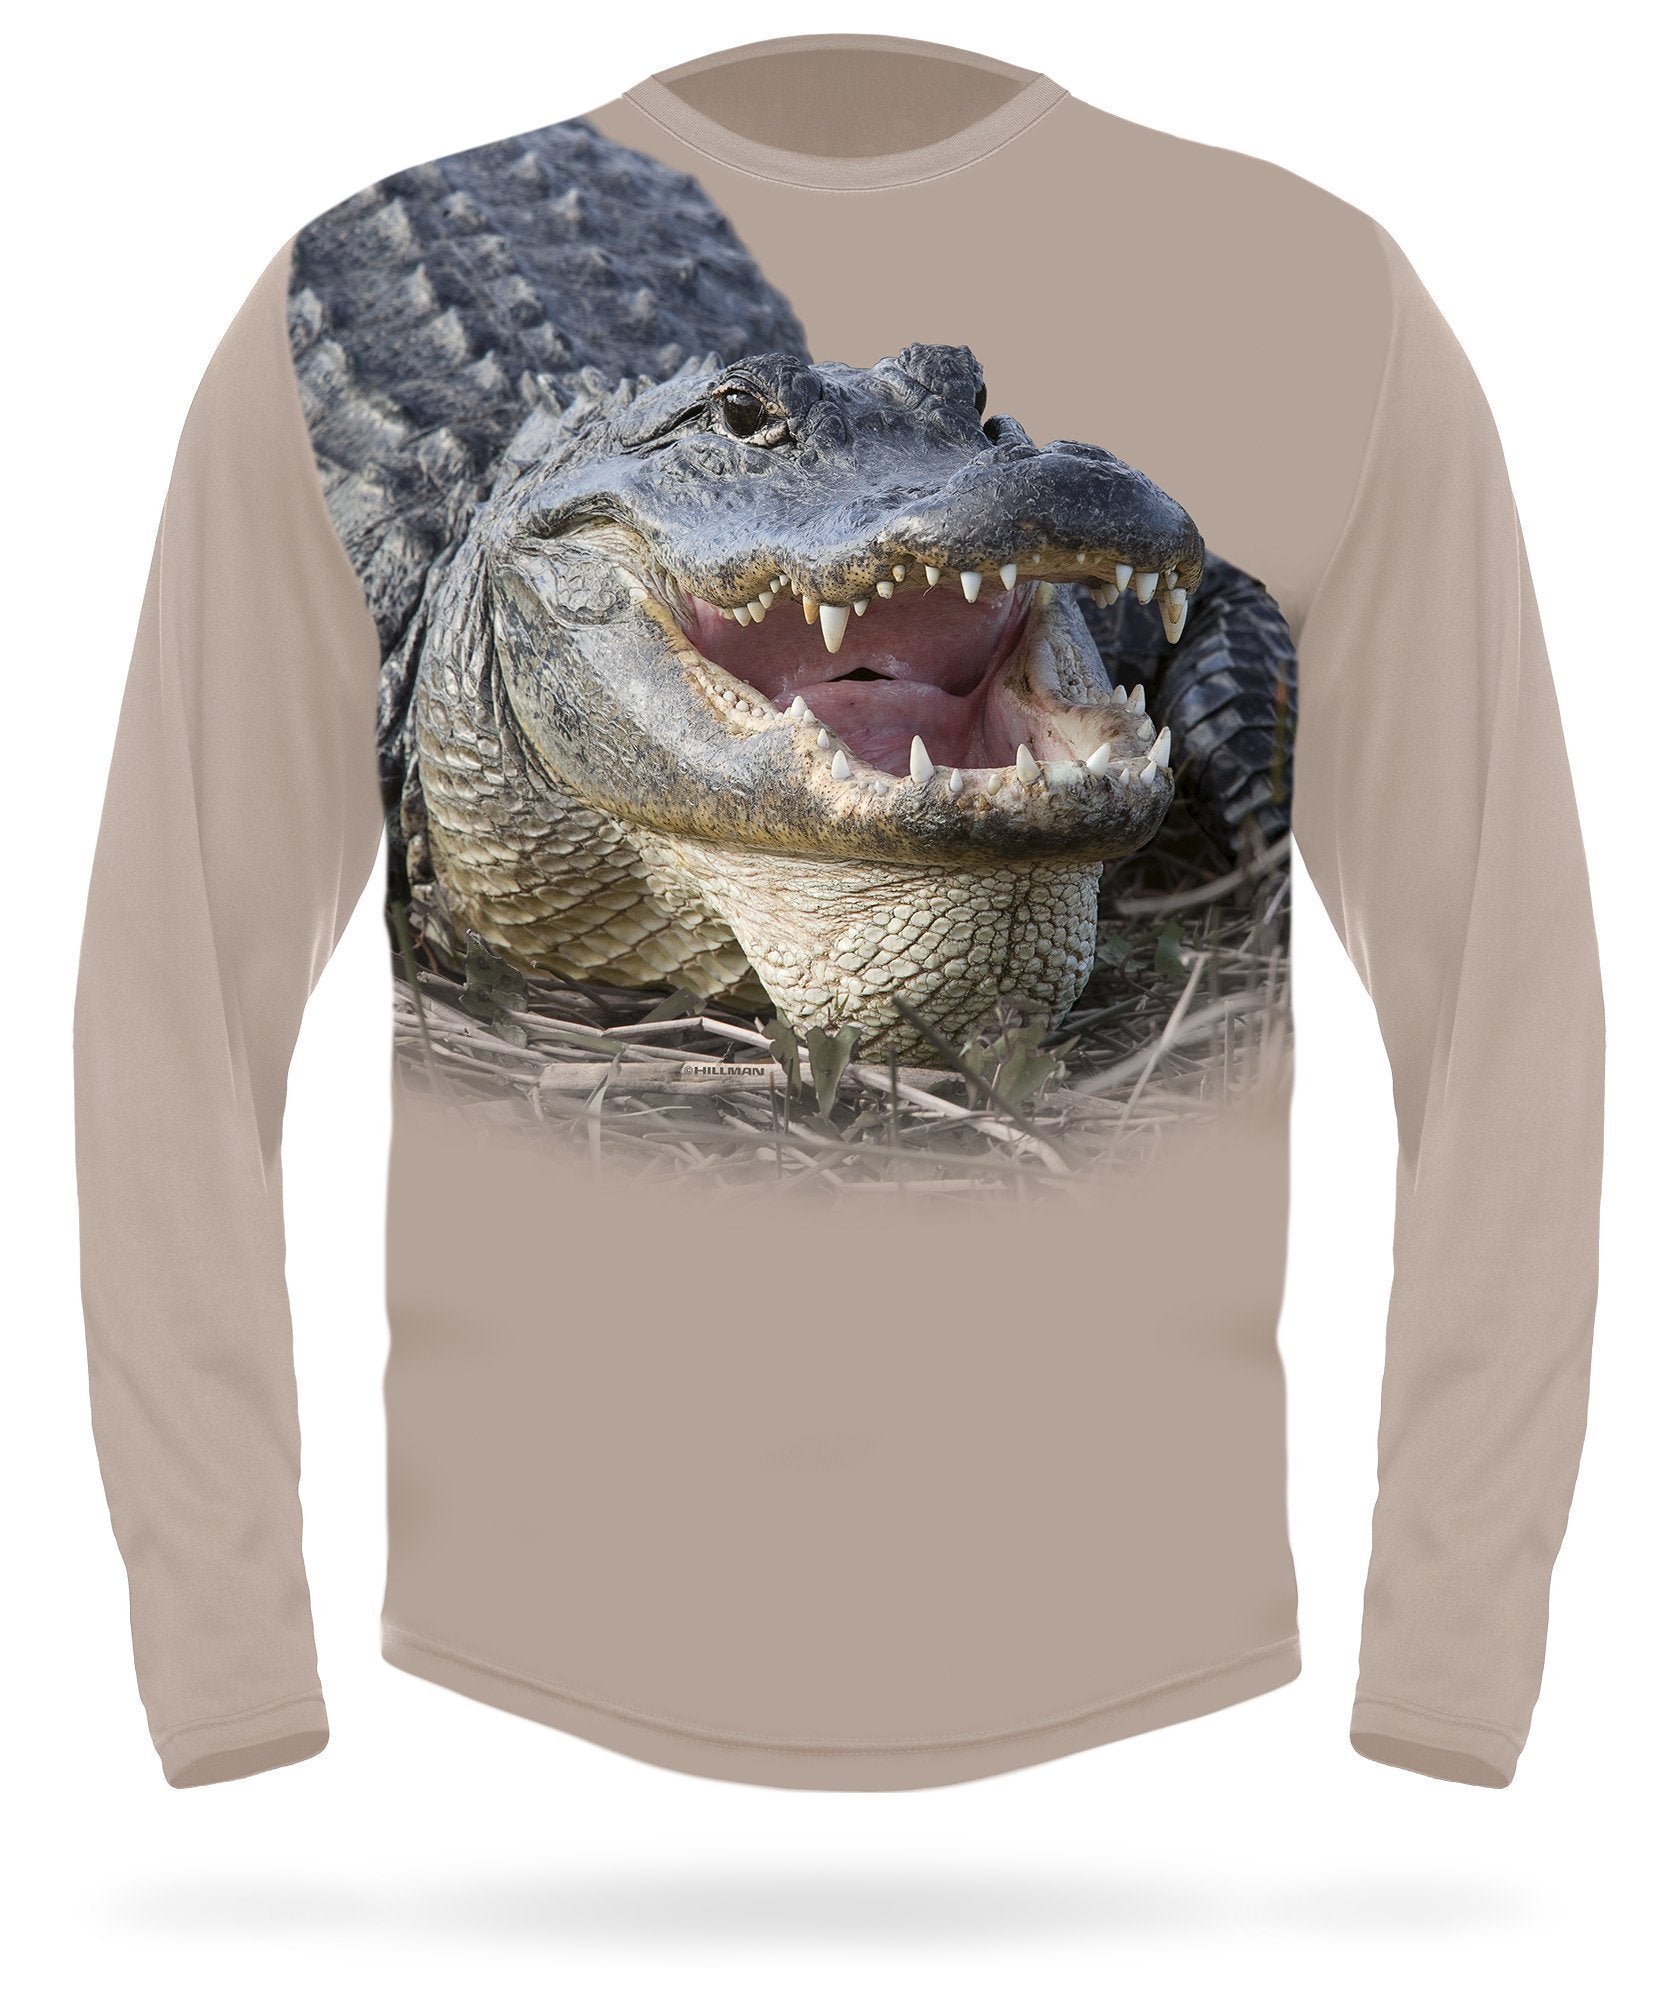 Alligator T-shirt Langarm